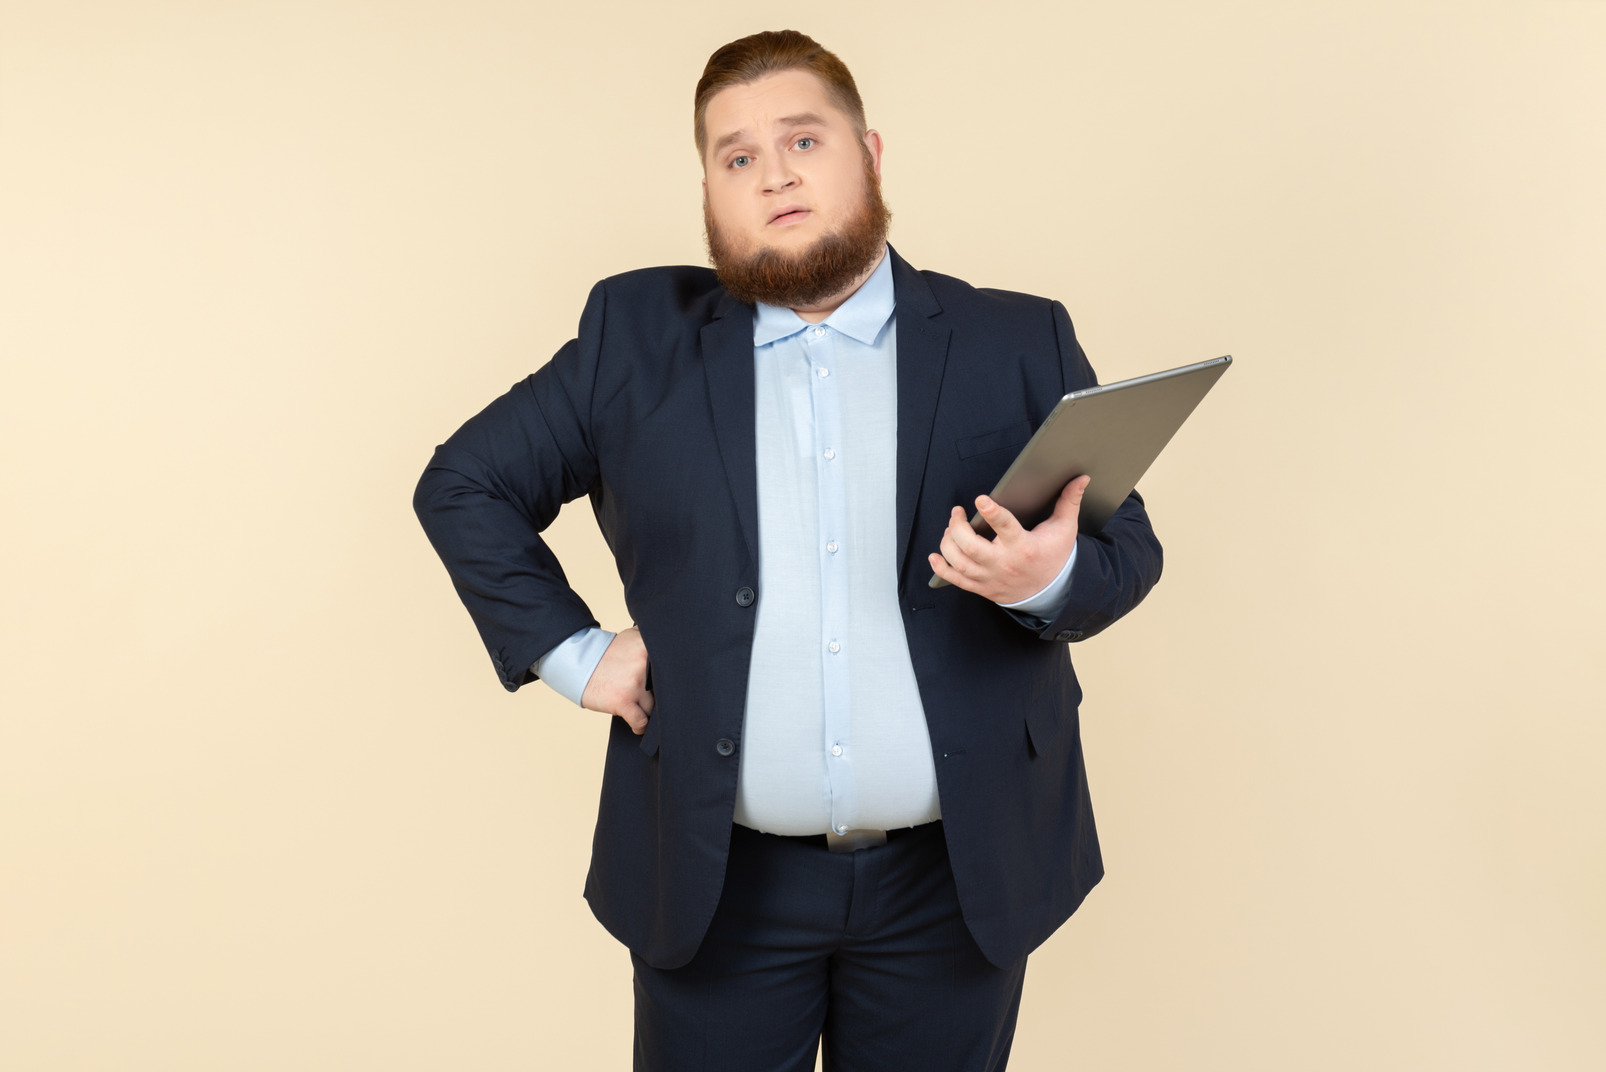 Serious looking young overweight office worker holding digital tablet